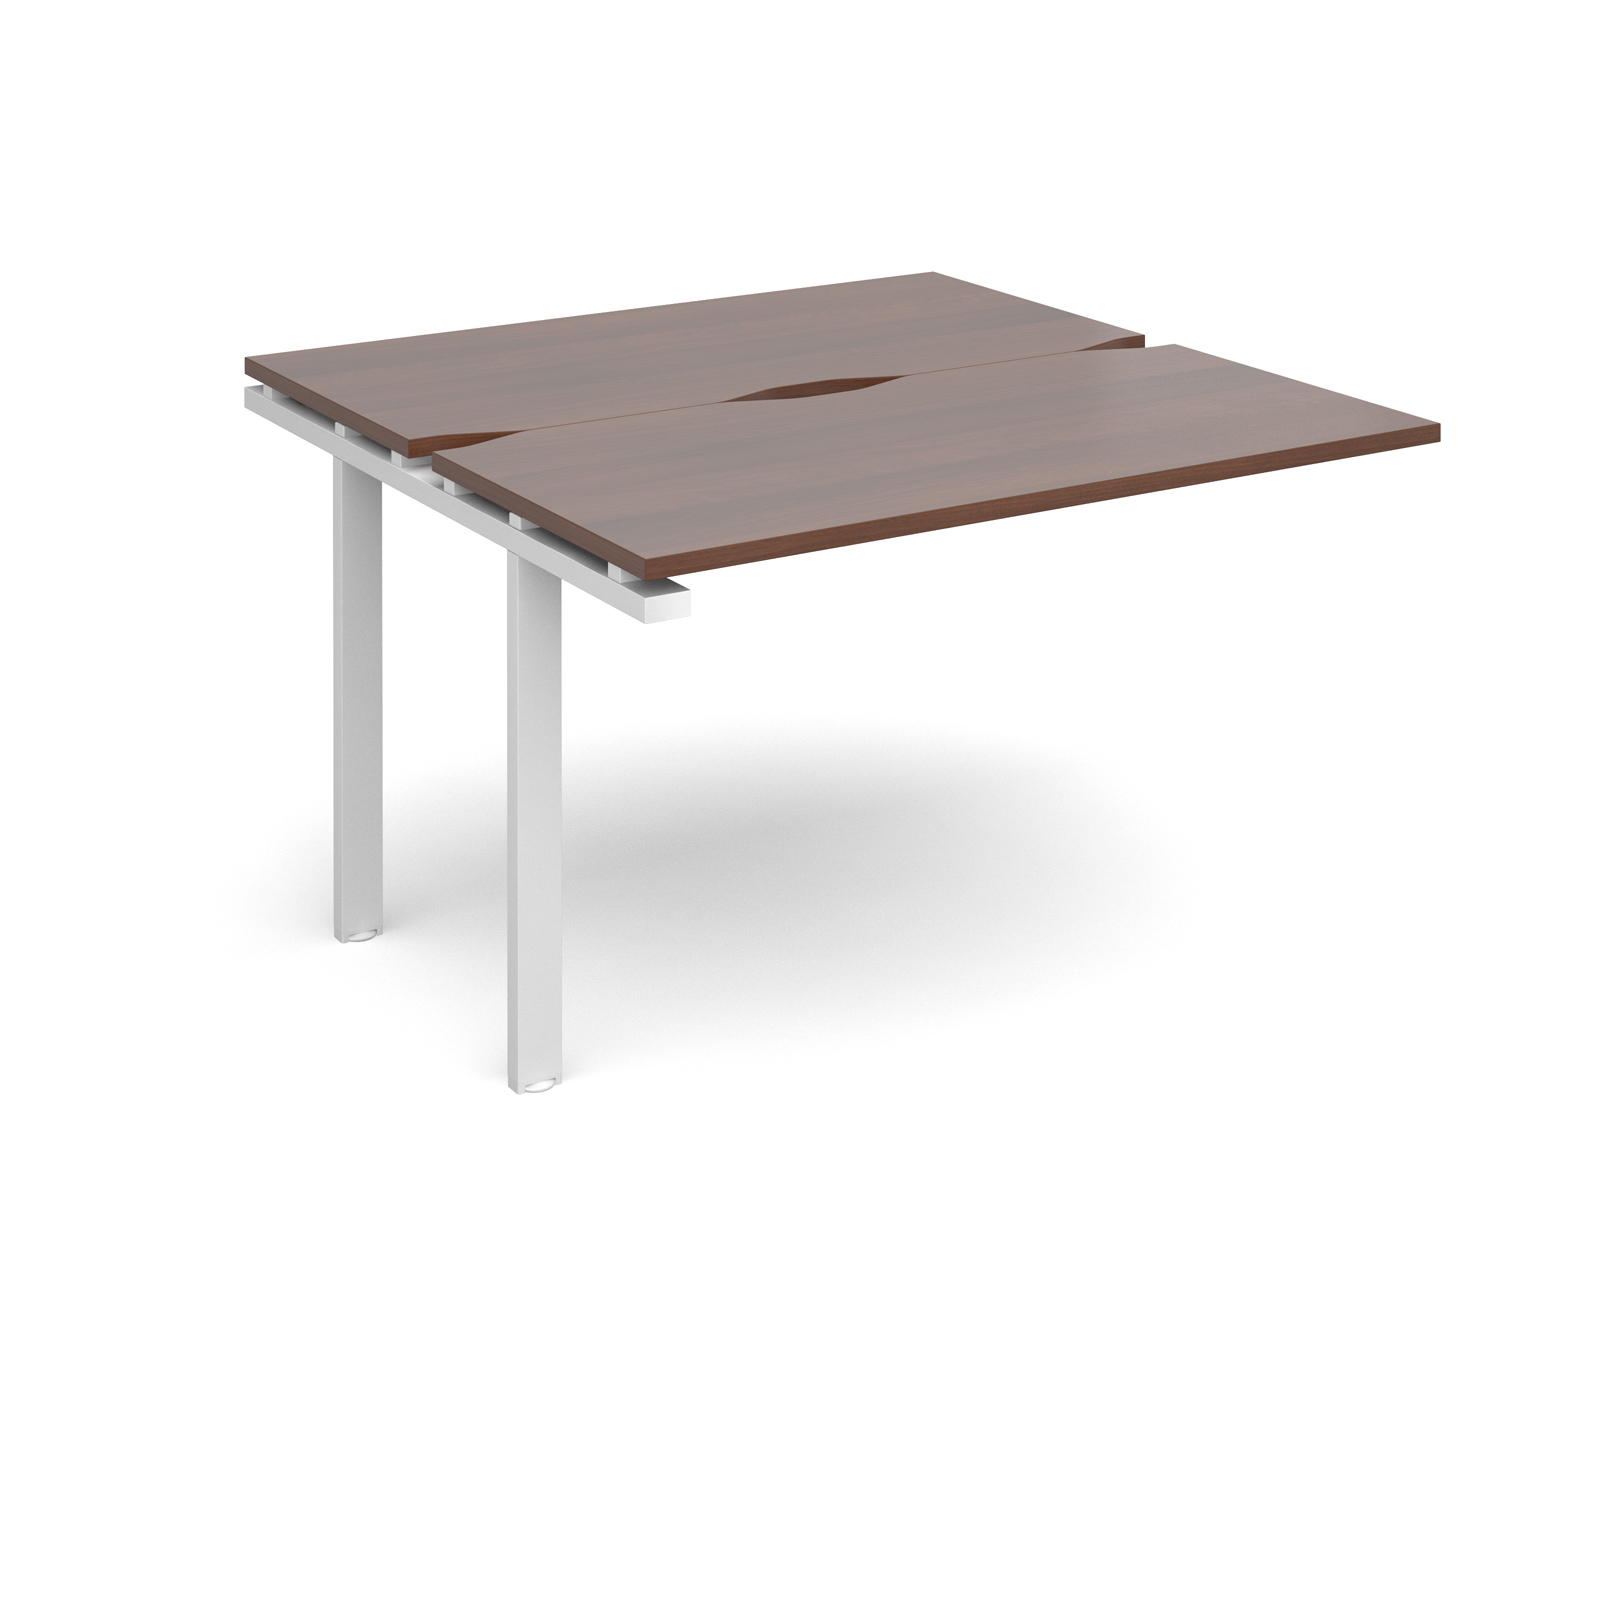 Adapt II 1200 x 1200 x 725mm Back to Back Add On Bay - Walnut / White Leg